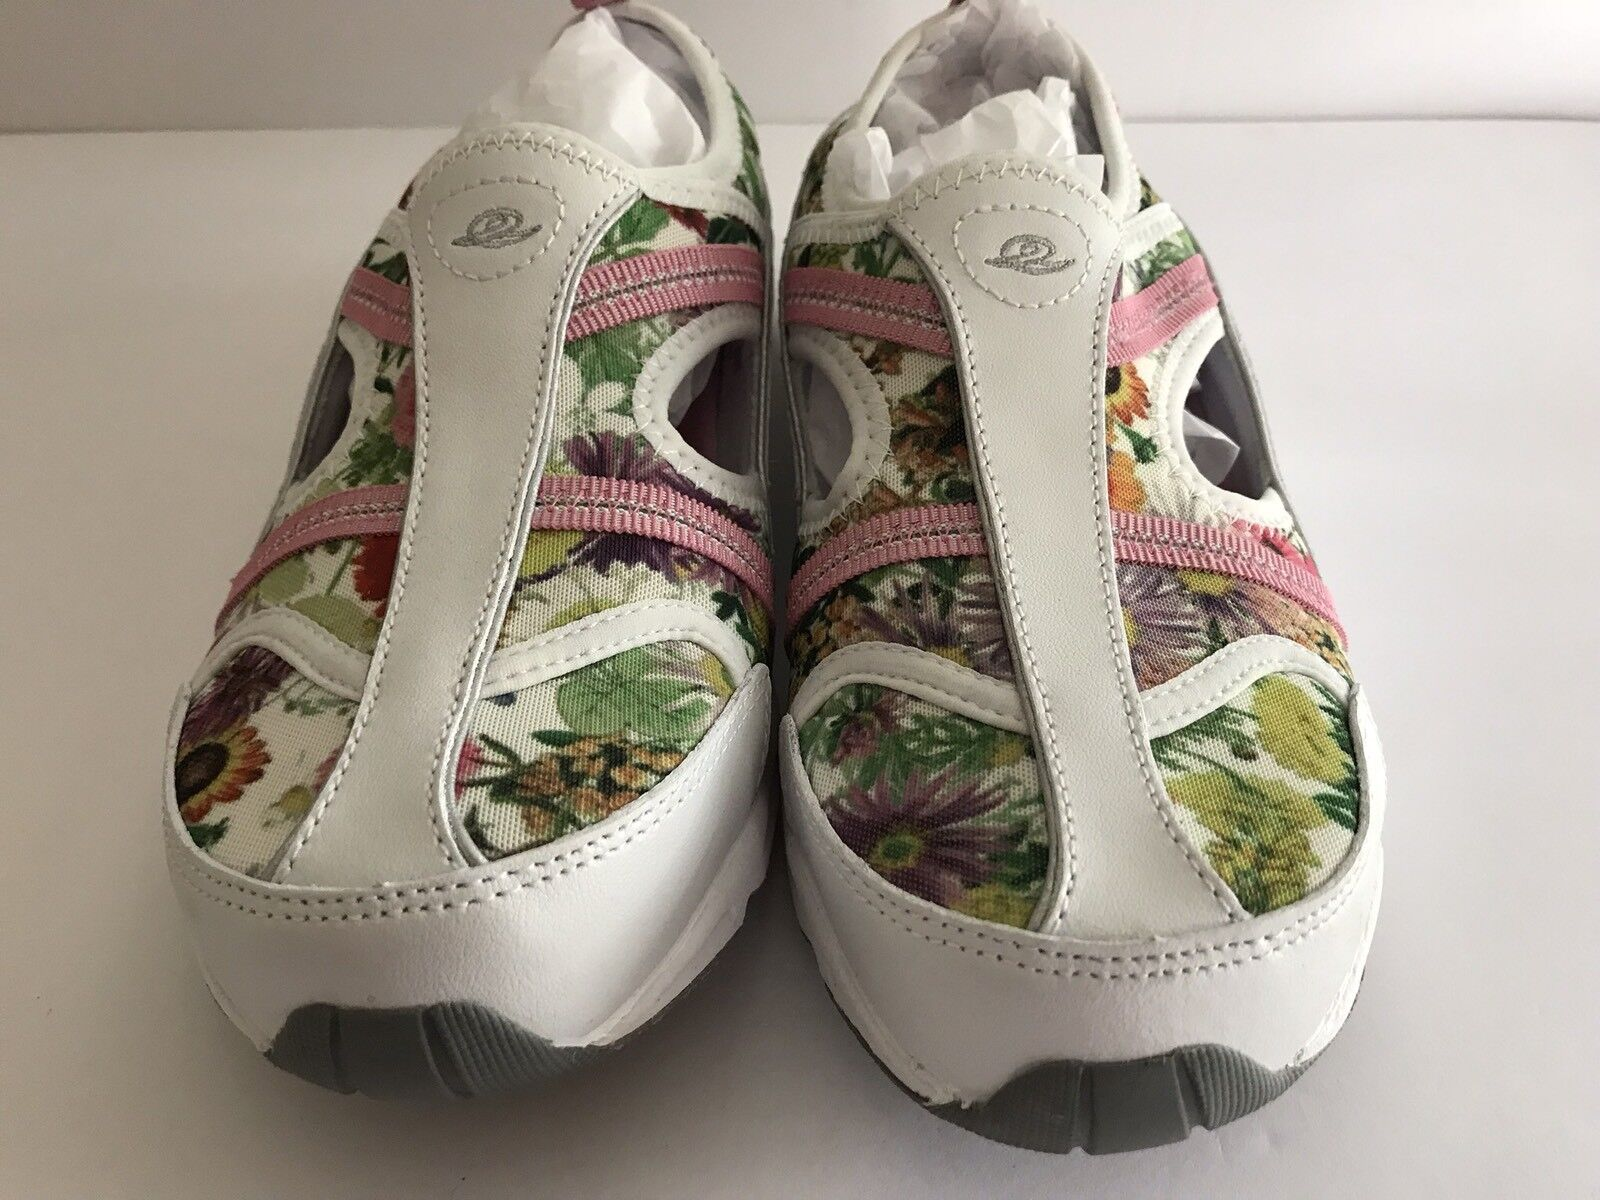 Easy Spirit Slingback Arobatic Multi Floral Pull On Athletic Shoe Size 8.5M